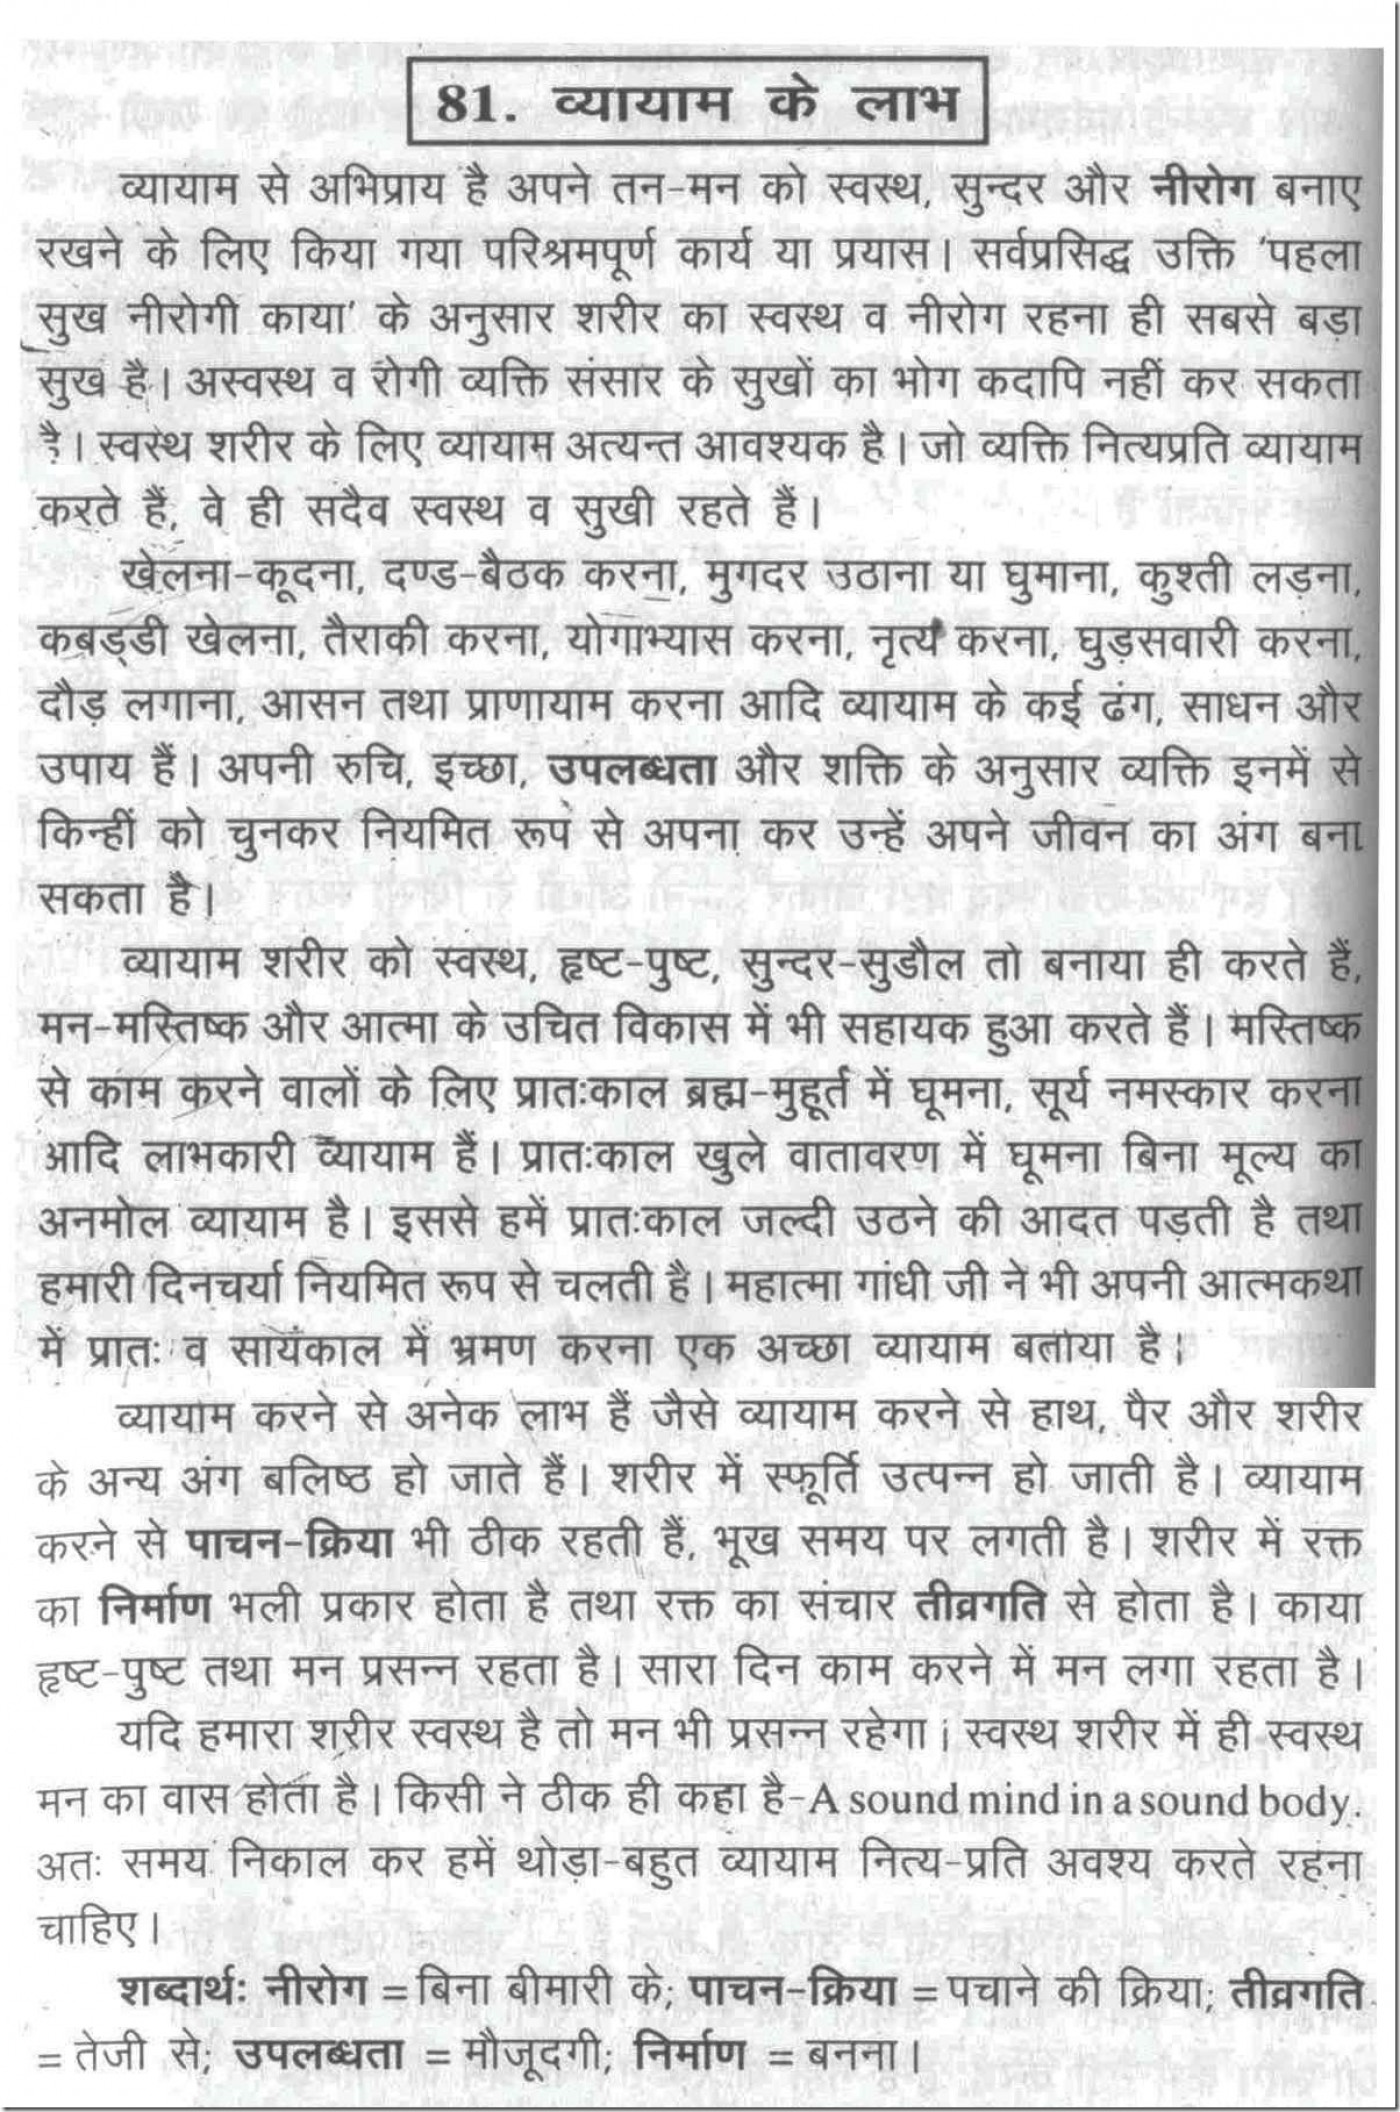 011 2563478896 Essay On Health And Fitness Through Food Good Habits In Hindi Exceptional Bad Healthy Eating 1400